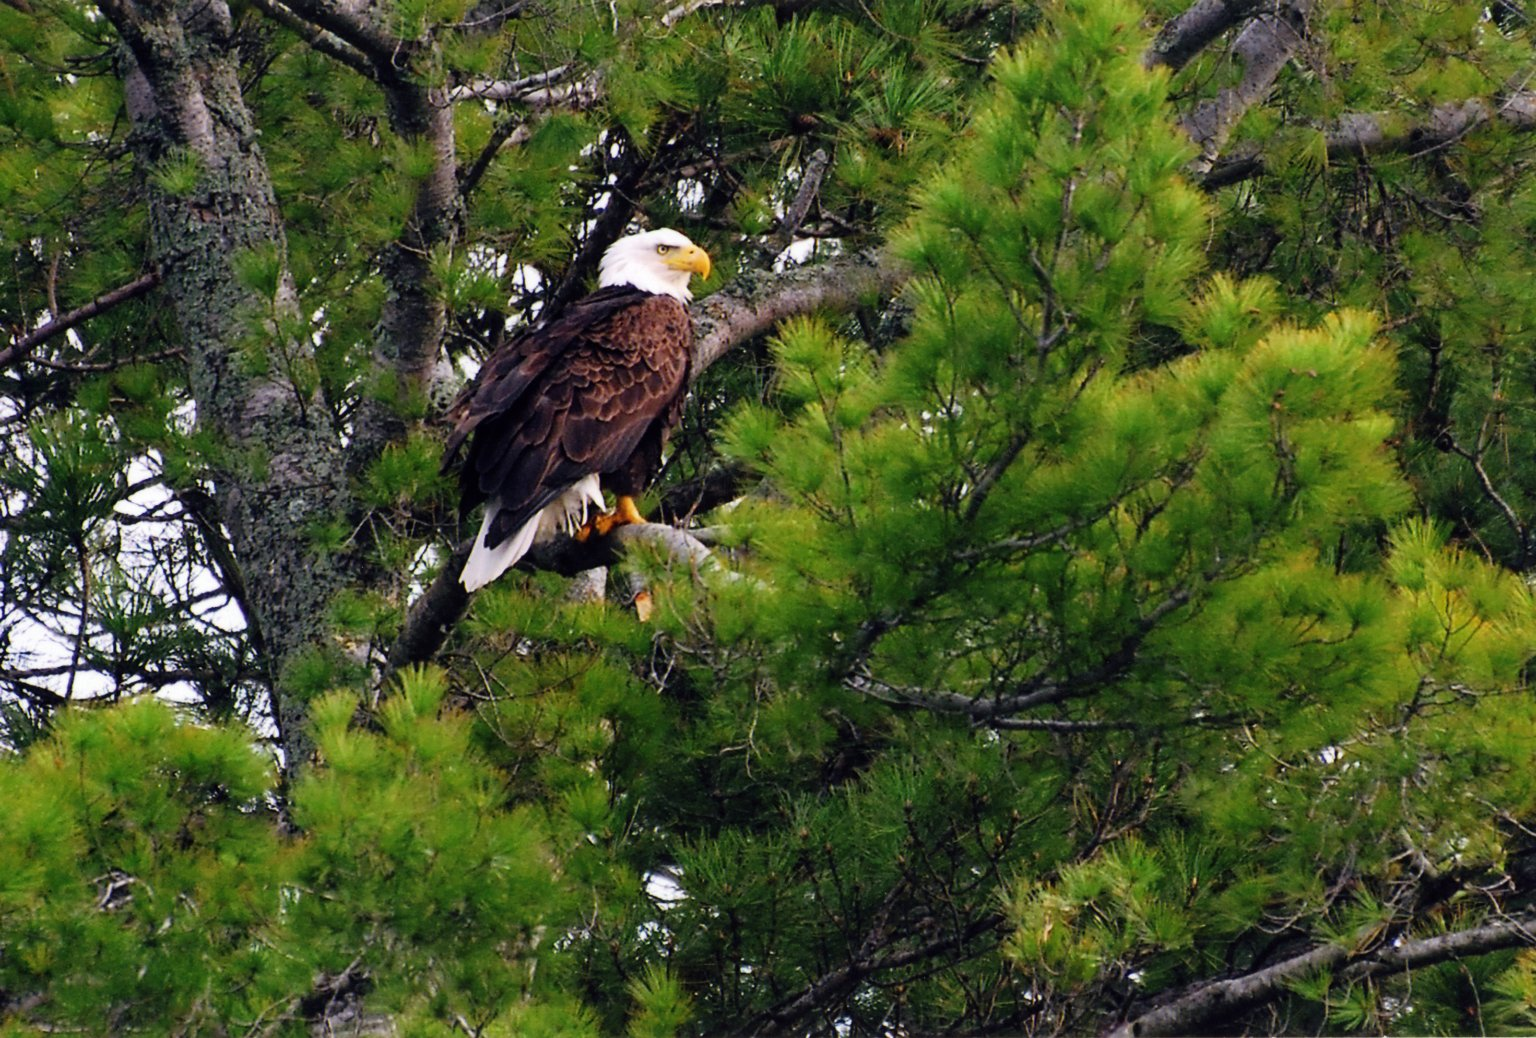 Image of bald eagle sitting in fir tree